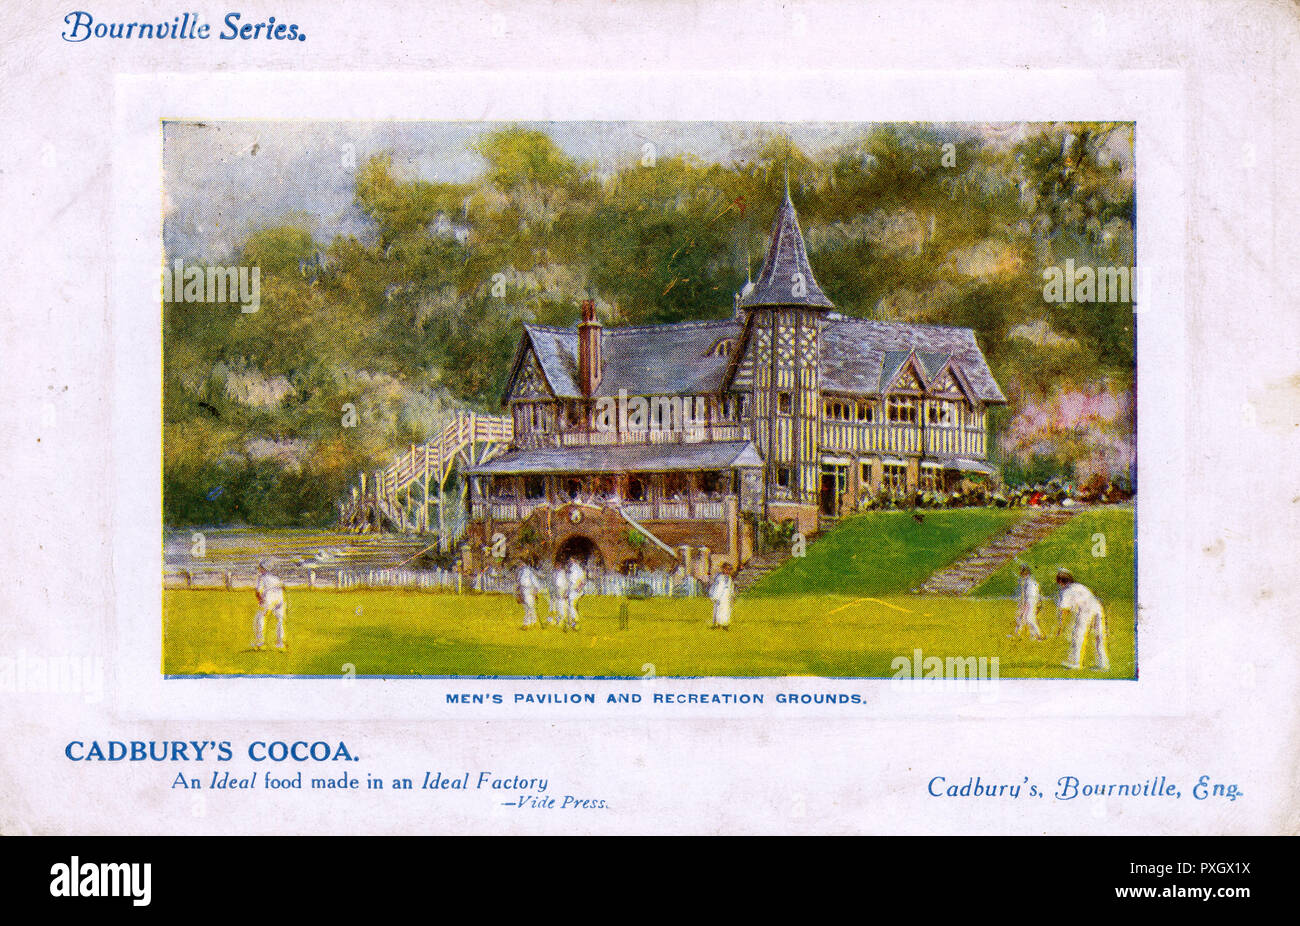 Men's Pavilion & Recreation Grounds, Bournville, Birmingham, England - part of the model community set up around the Cadbury's Cocoa Factory. Cricket being played at the Cadbury Sports Club.     Date: 1910 - Stock Image